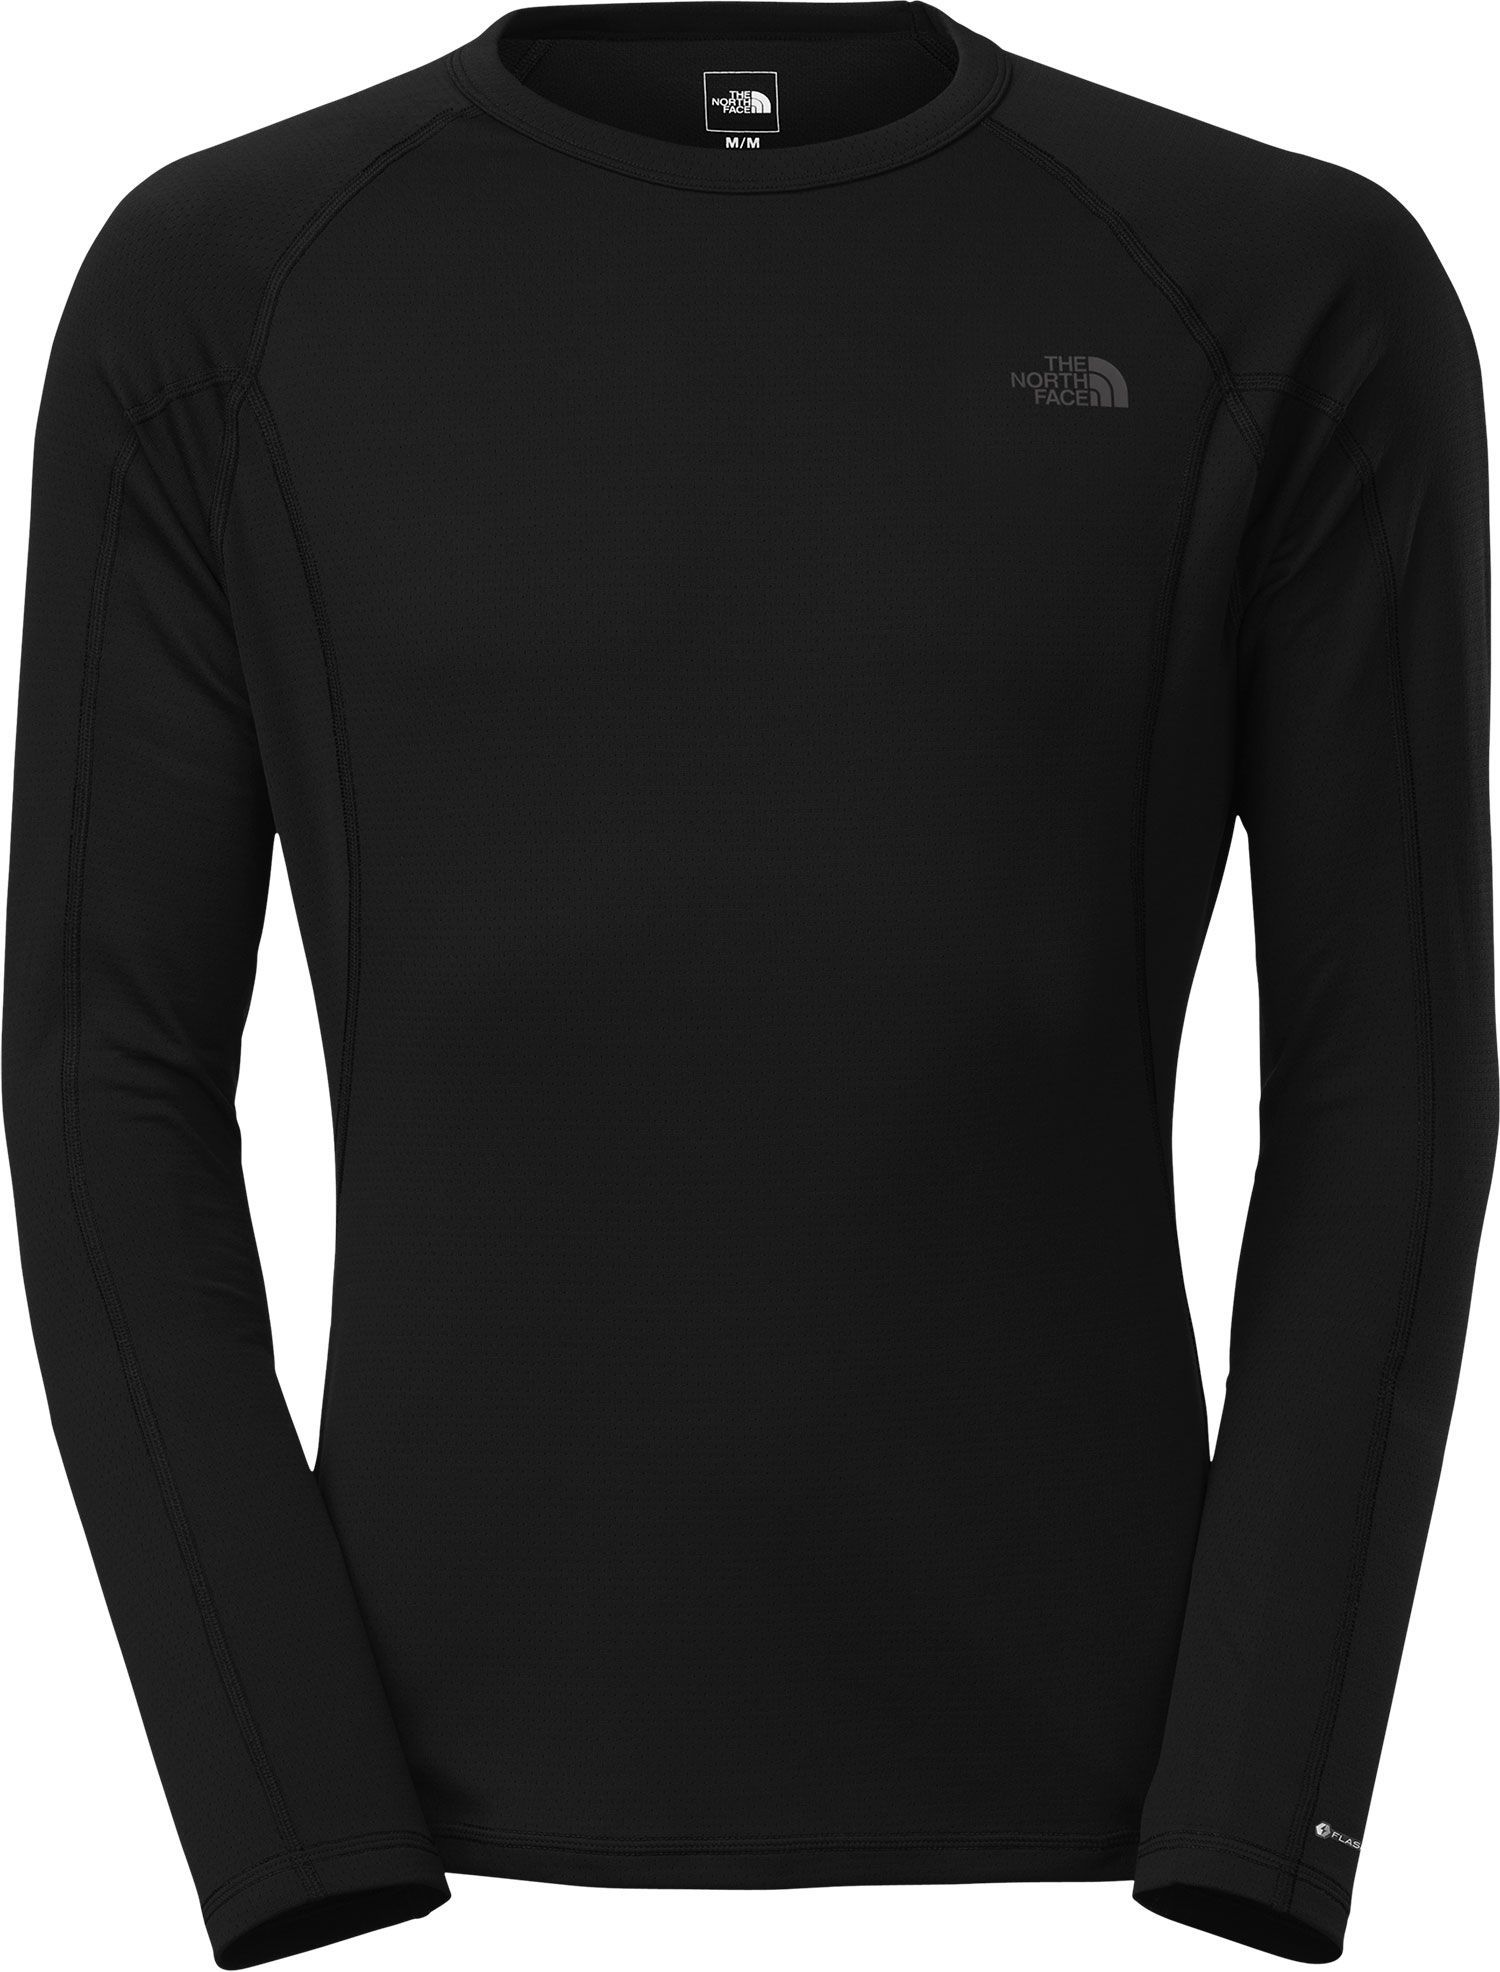 5dc209d29 The North Face Men's Long Sleeve Crew Neck Baselayer Shirt ...